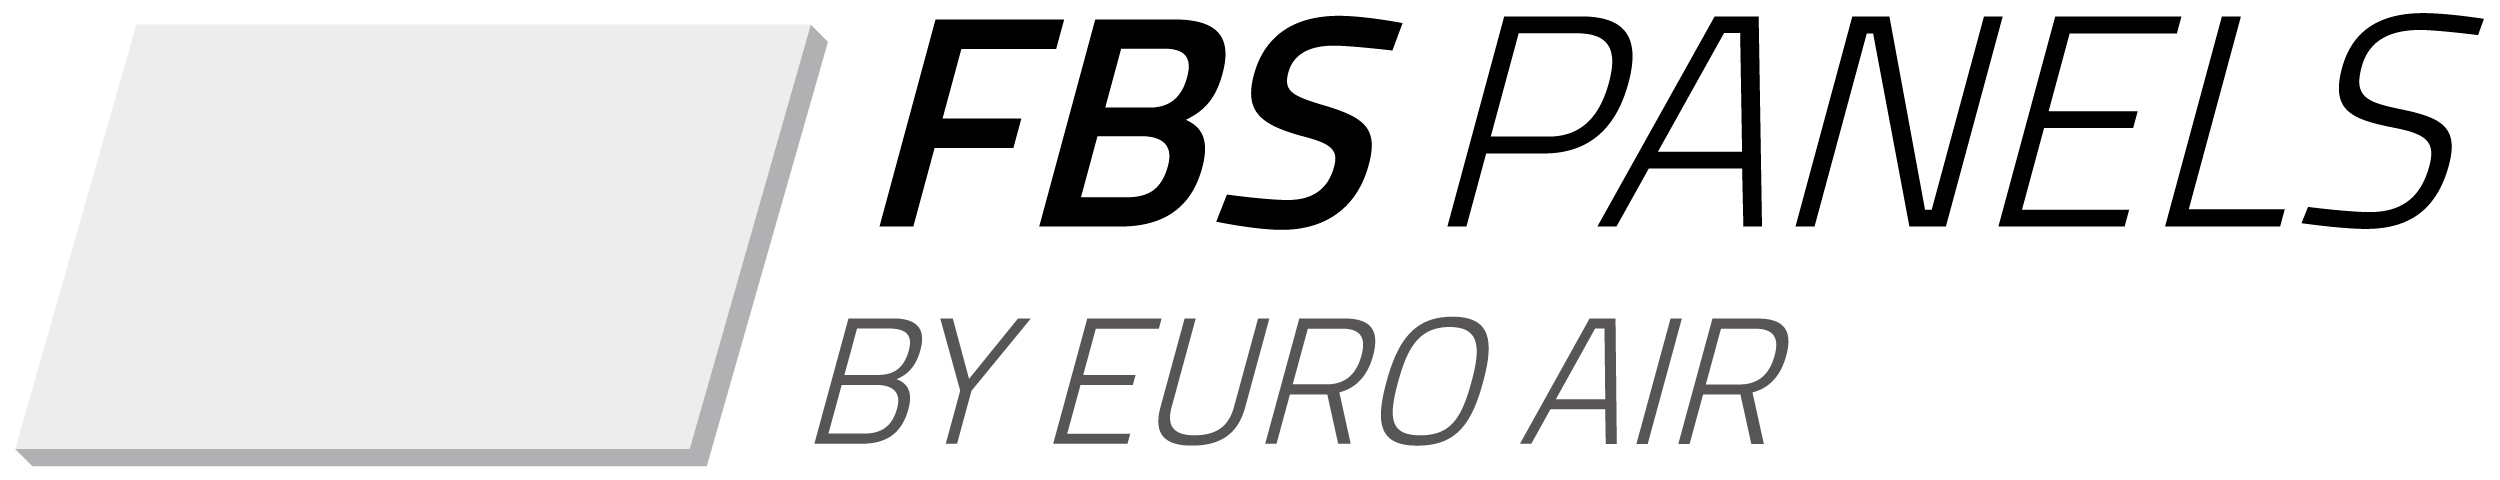 FBS Panels by Euro Air